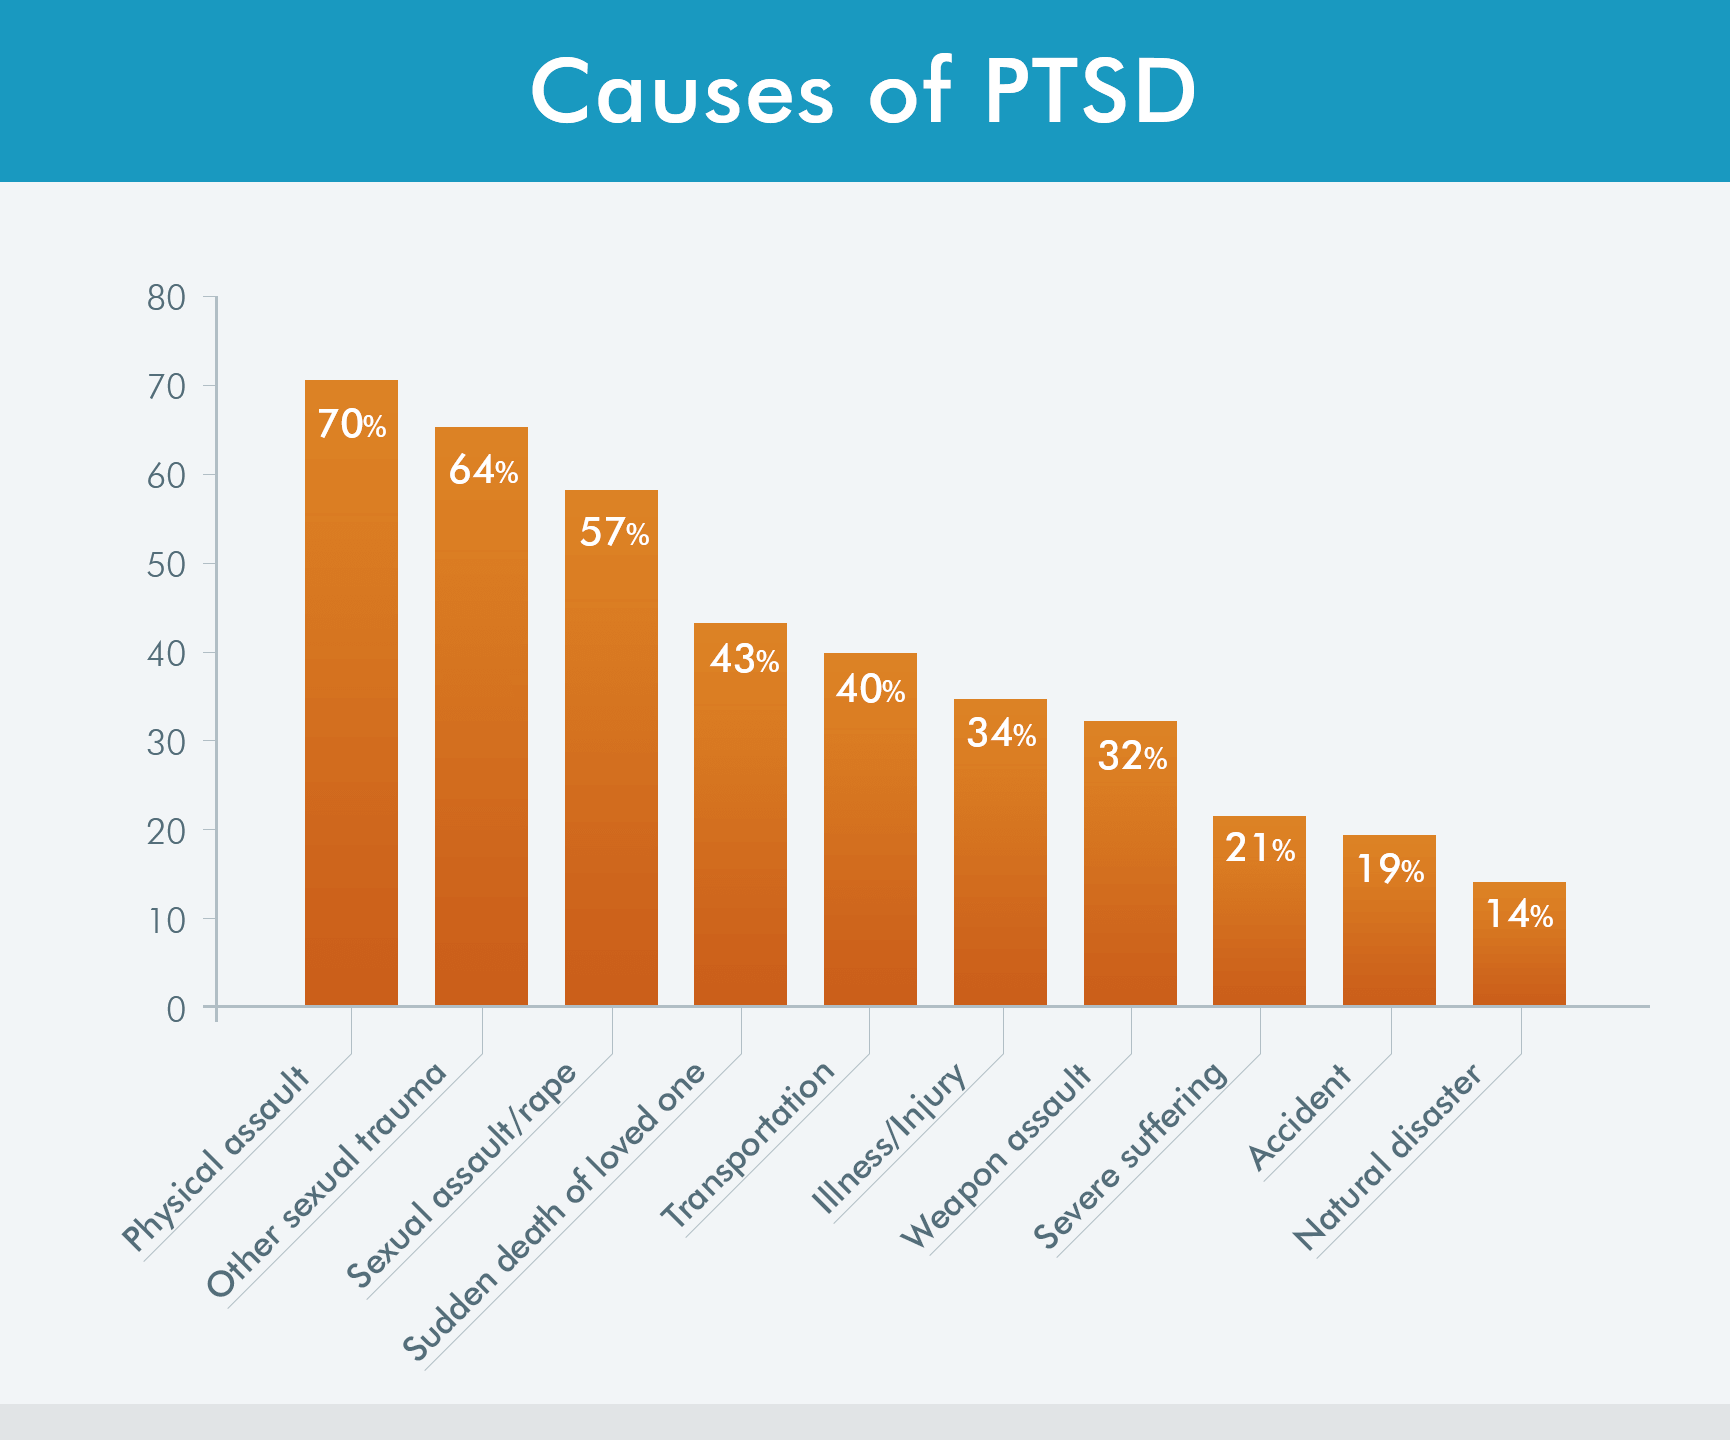 causes of PTSD chart